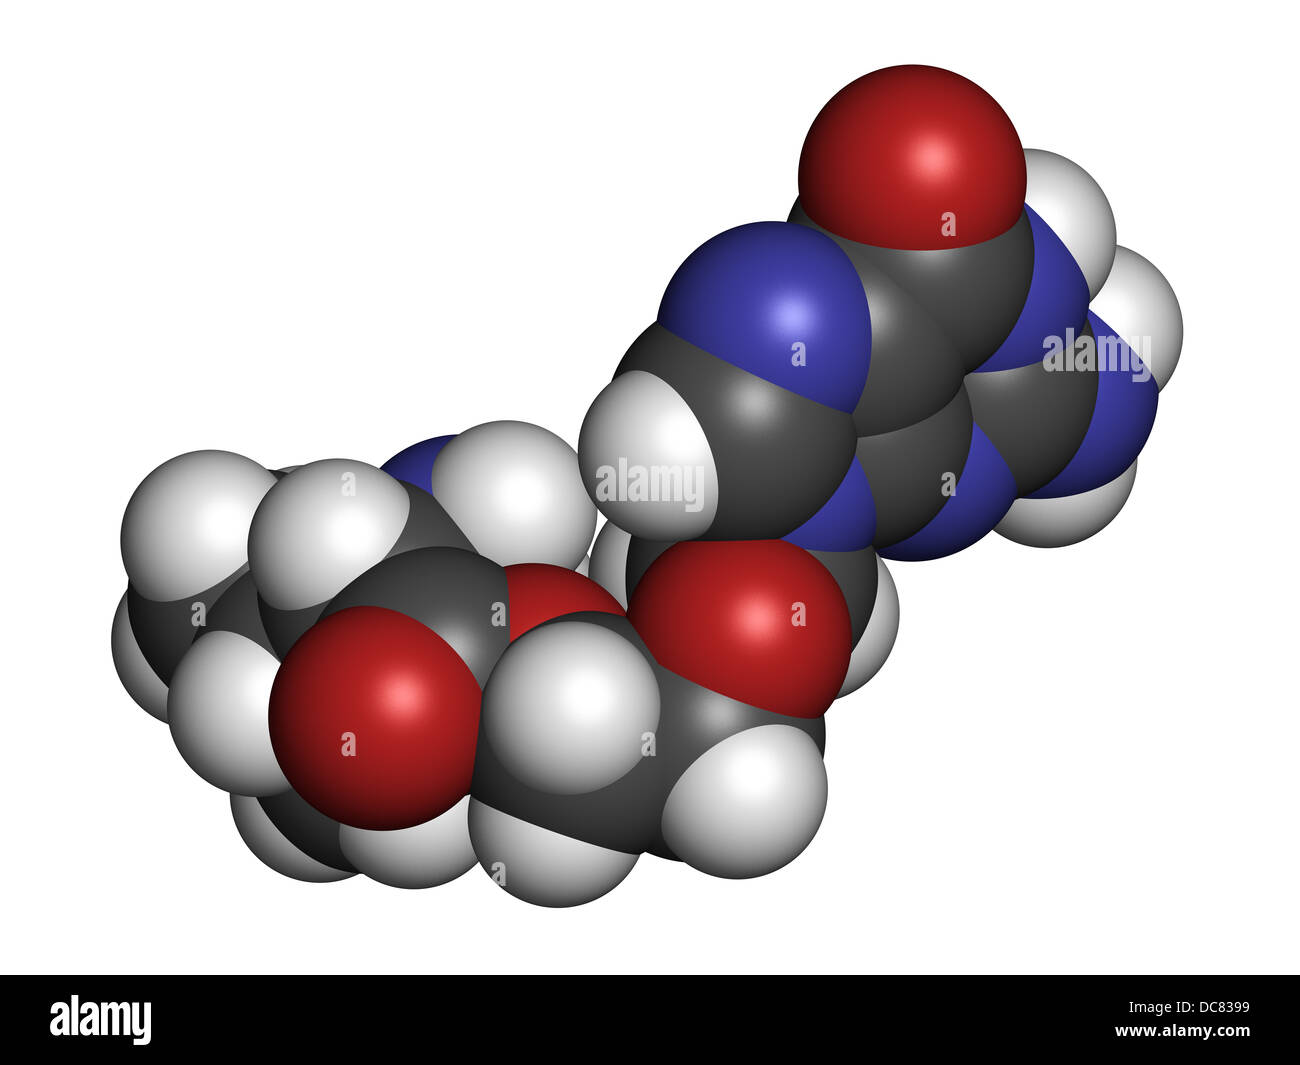 Valaciclovir (valacyclovir) herpes infection drug, chemical structure. Atoms are represented as spheres with conventional - Stock Image